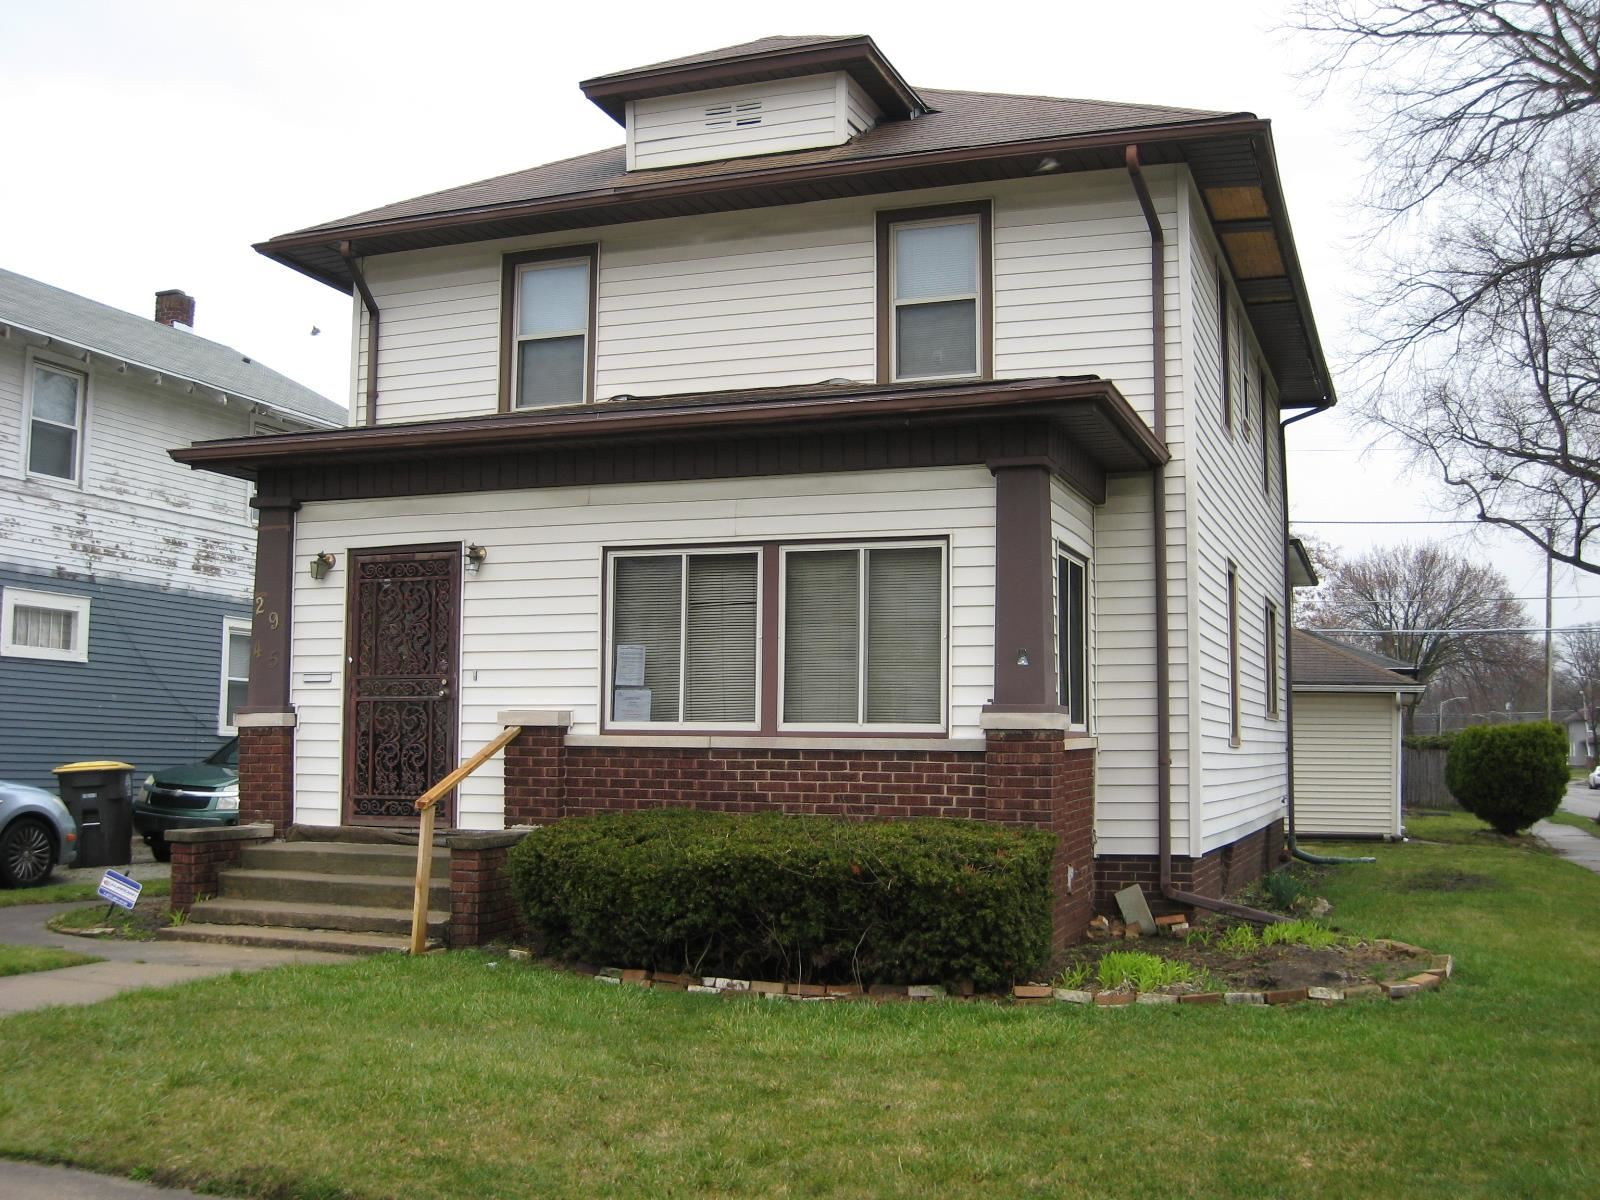 2945 EUCLID Ave Avenue, Fort Wayne, IN 46806 - #: 202011343